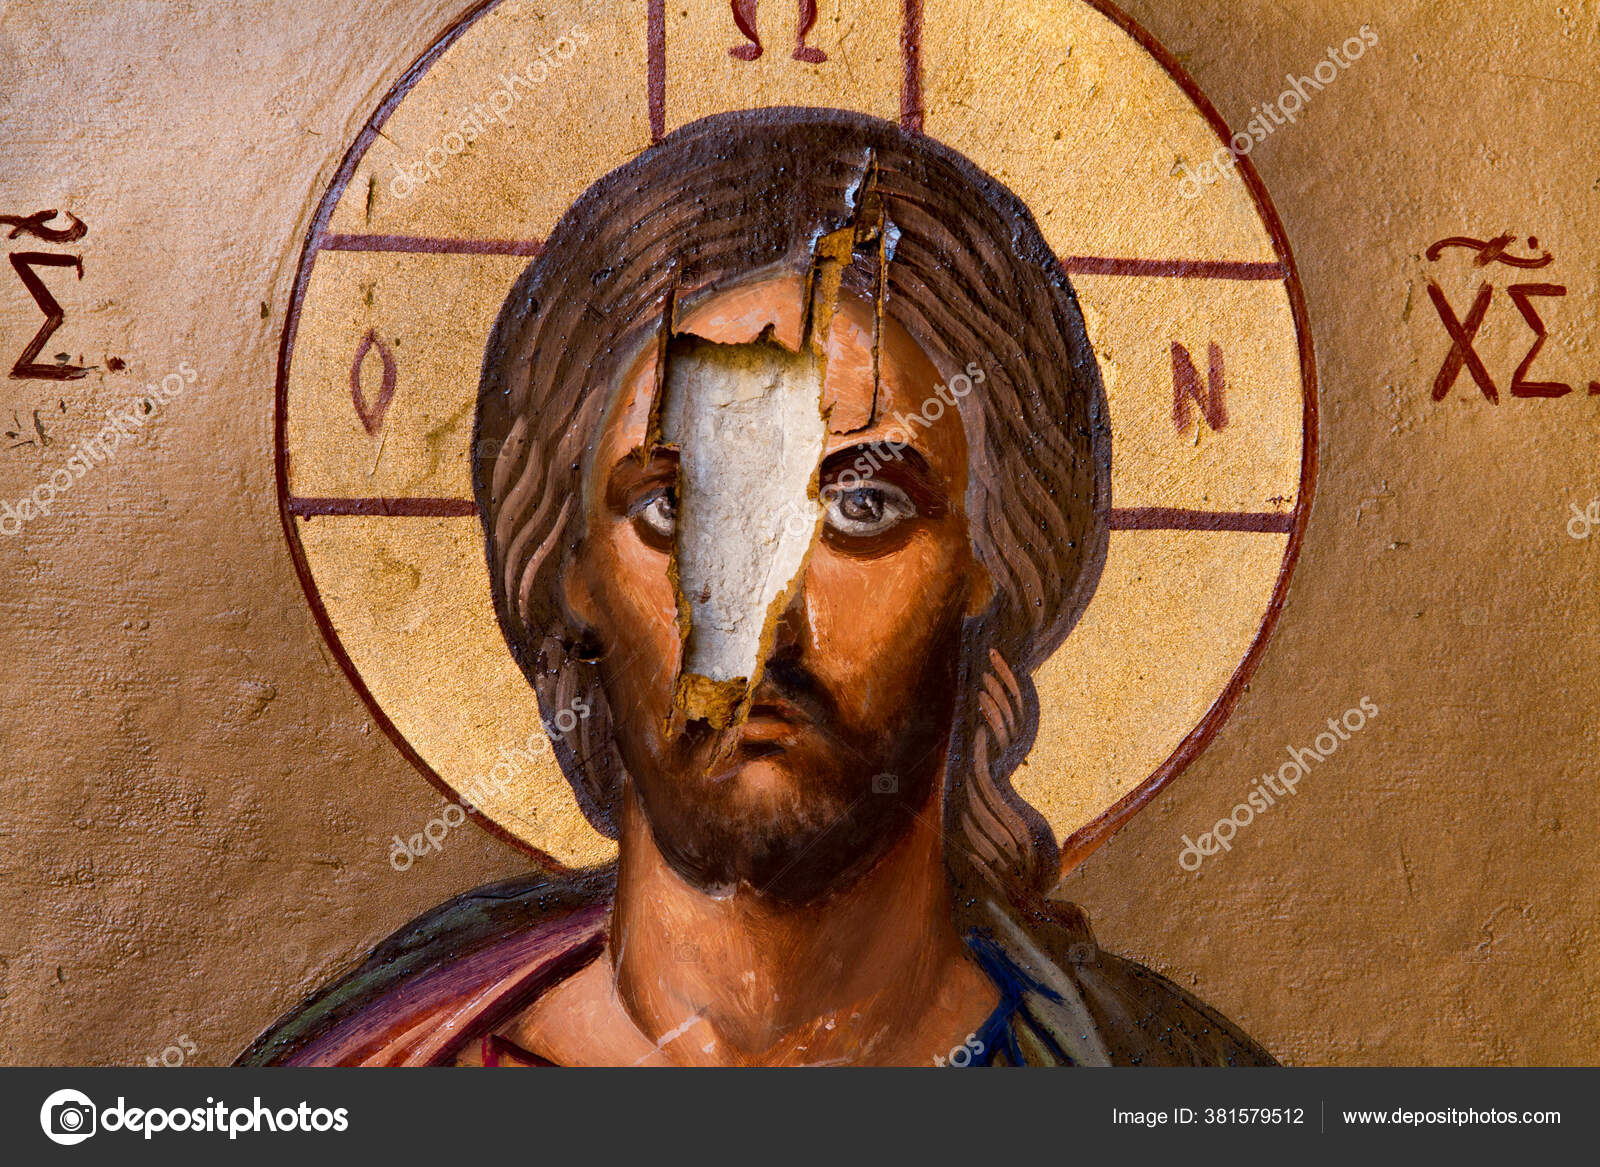 Jesus Christ Pictures Images Stock Photos Depositphotos